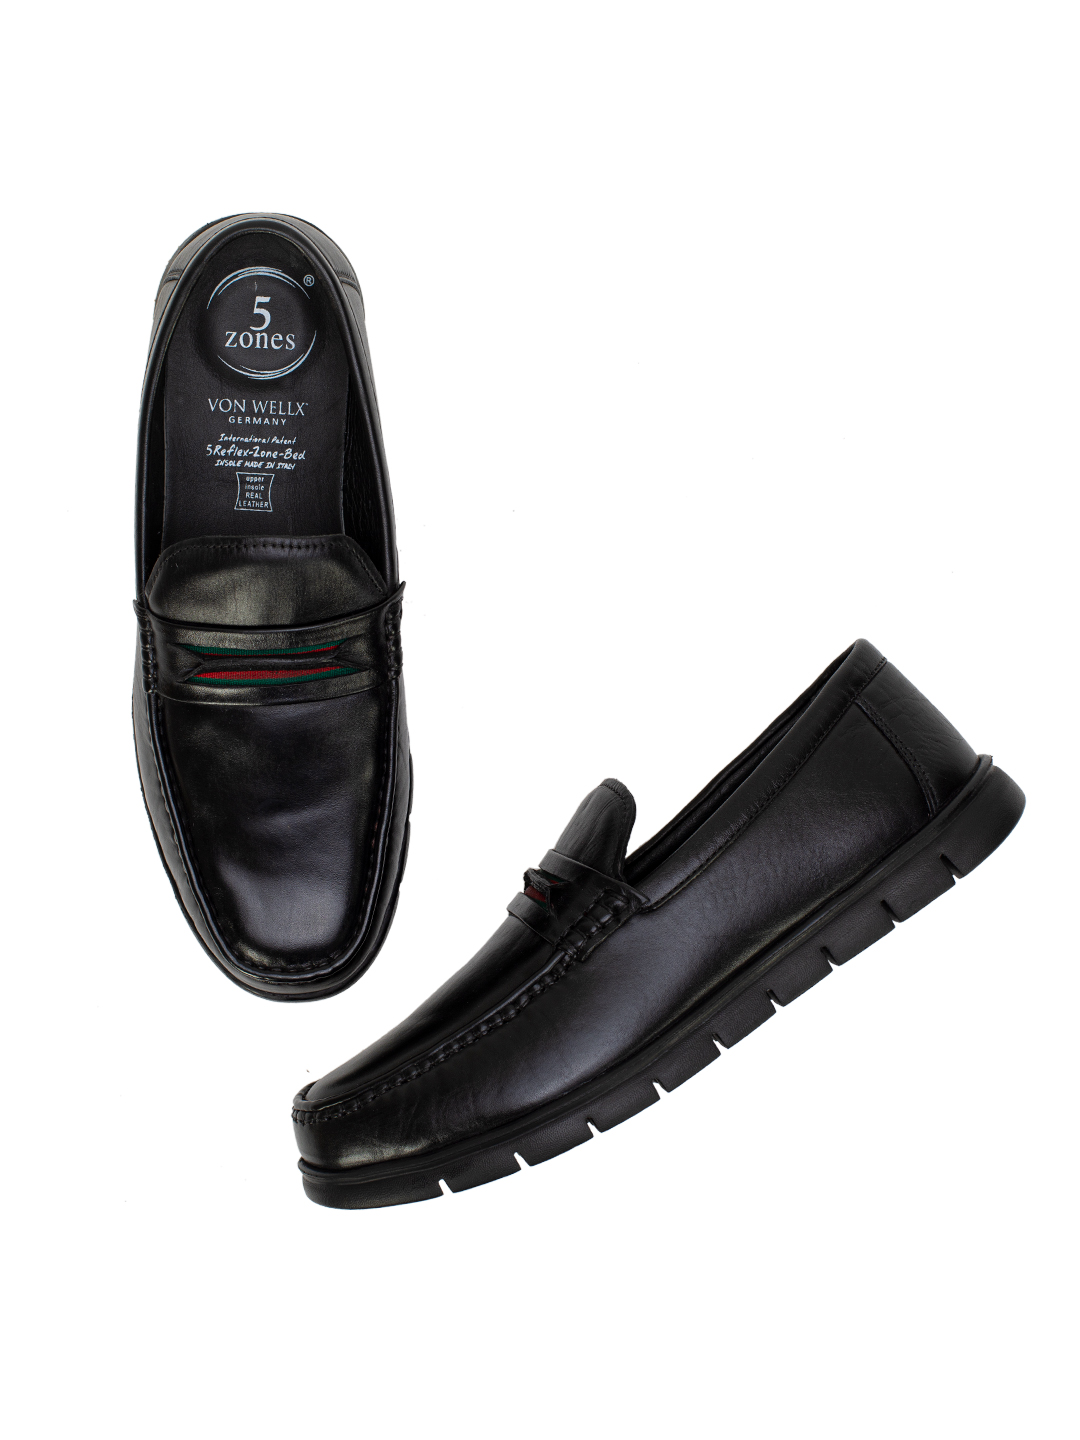 Buy Von Wellx Germany Comfort Black Rhett Shoes Online in Navi Mumbai